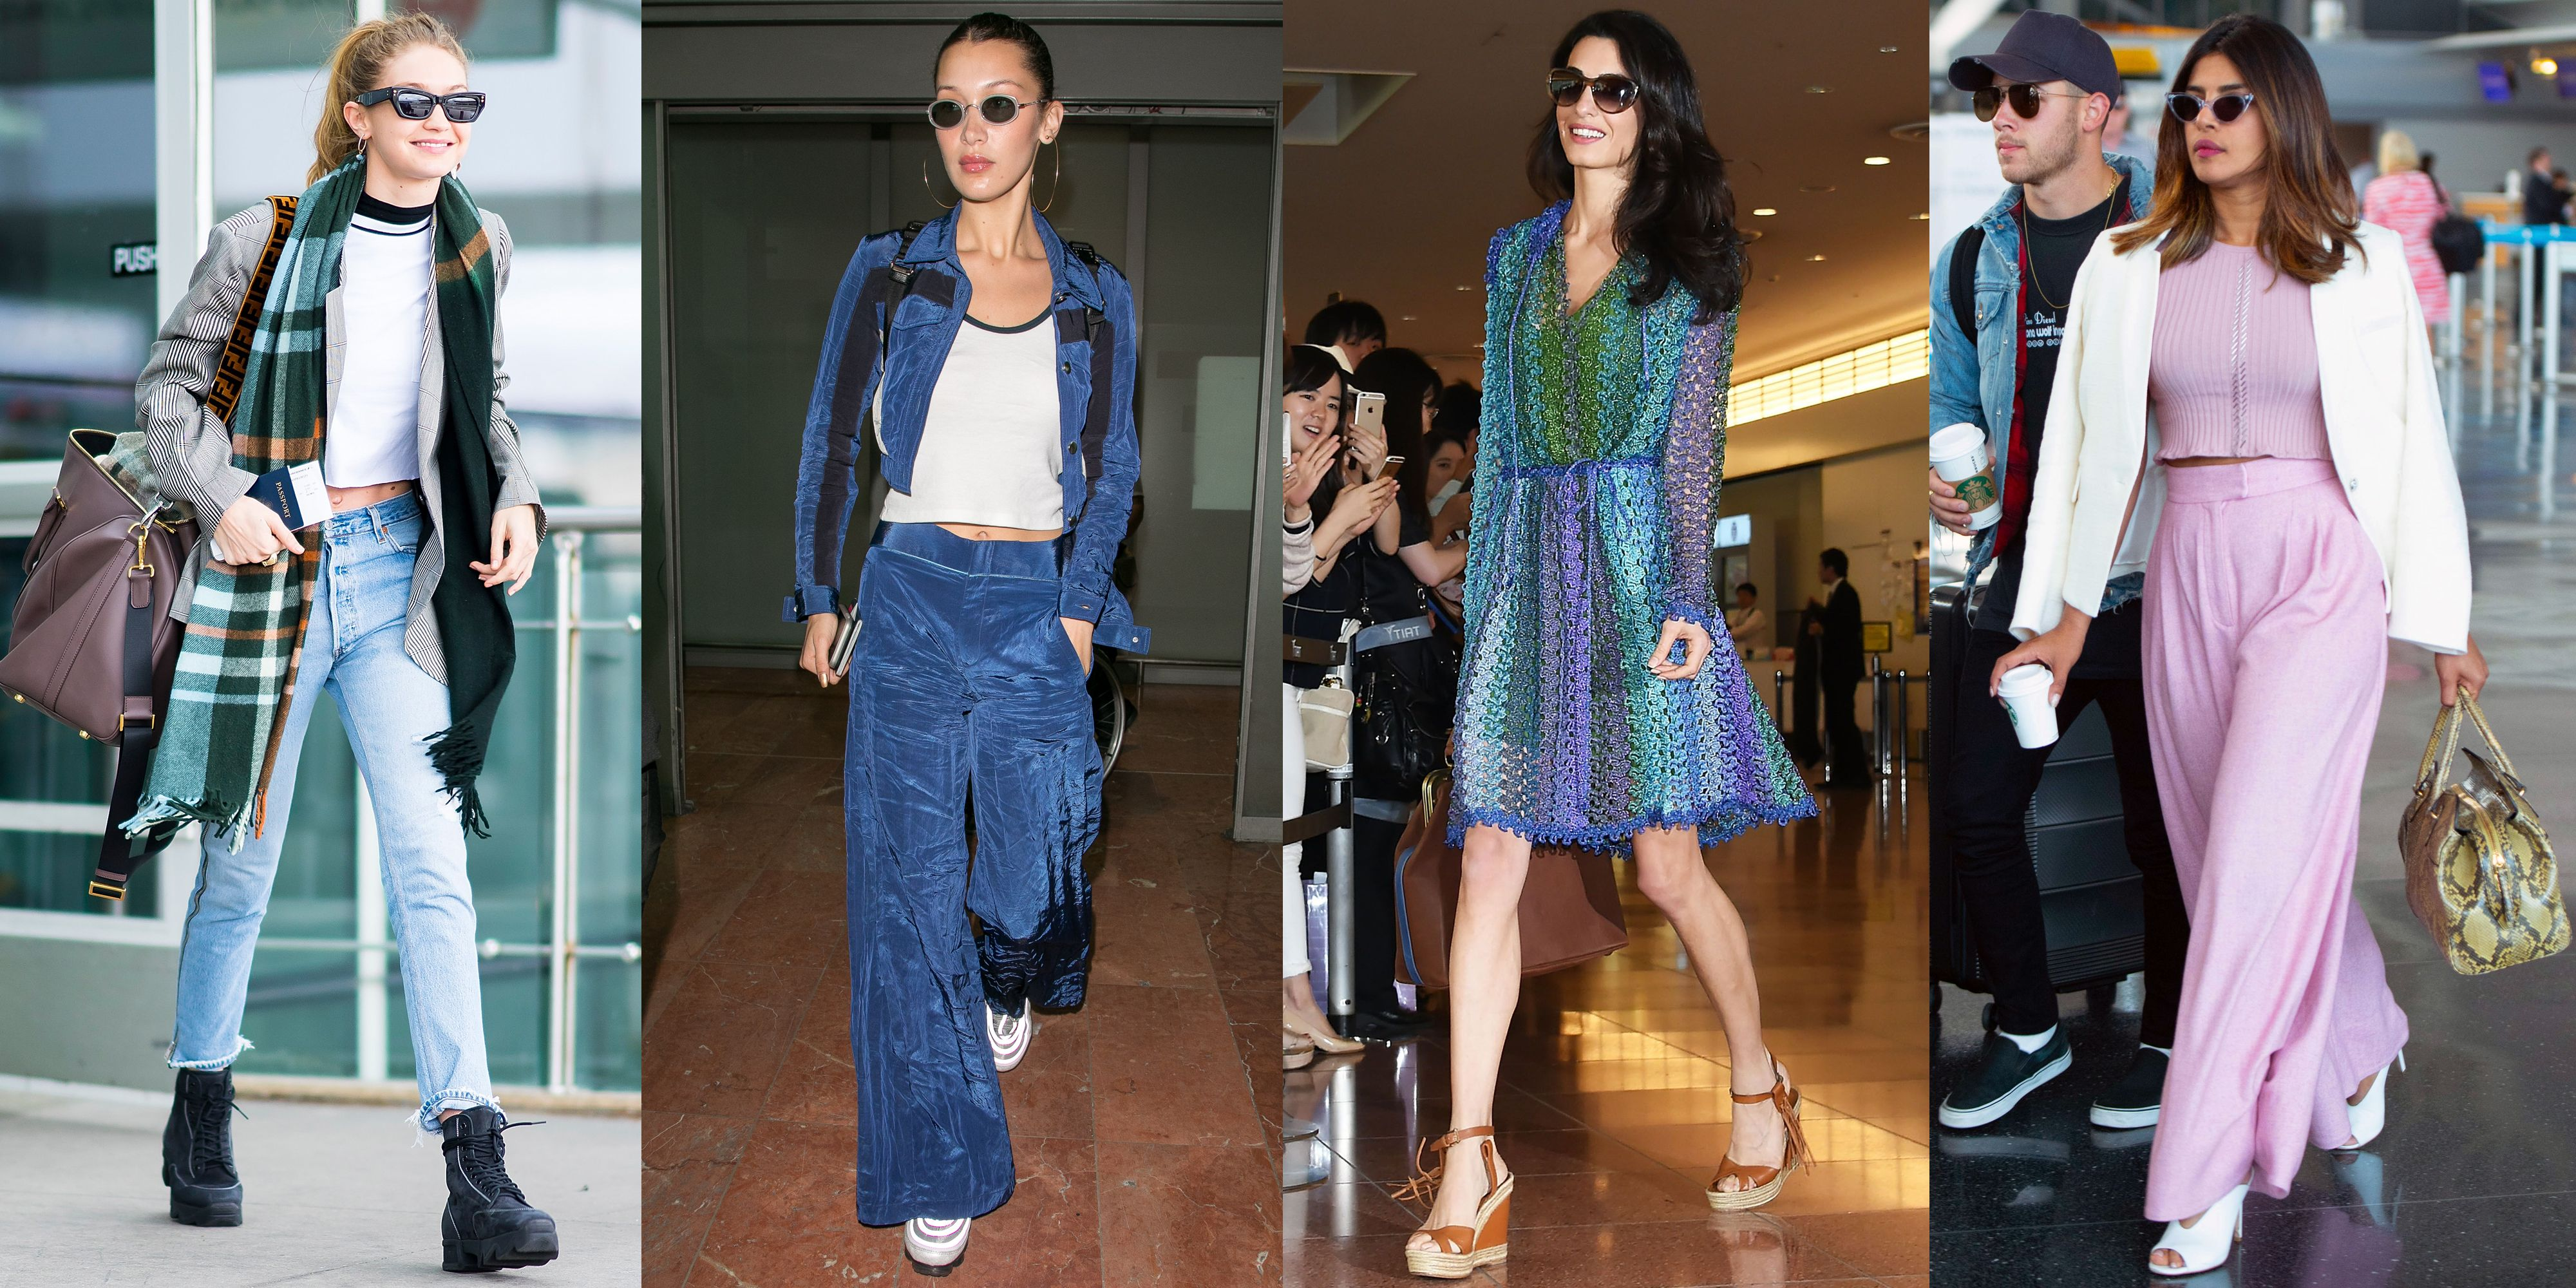 78f7dfbc331 105 Celebrities Looking Chic at the Airport—in Clothes You d Actually Want  to Wear